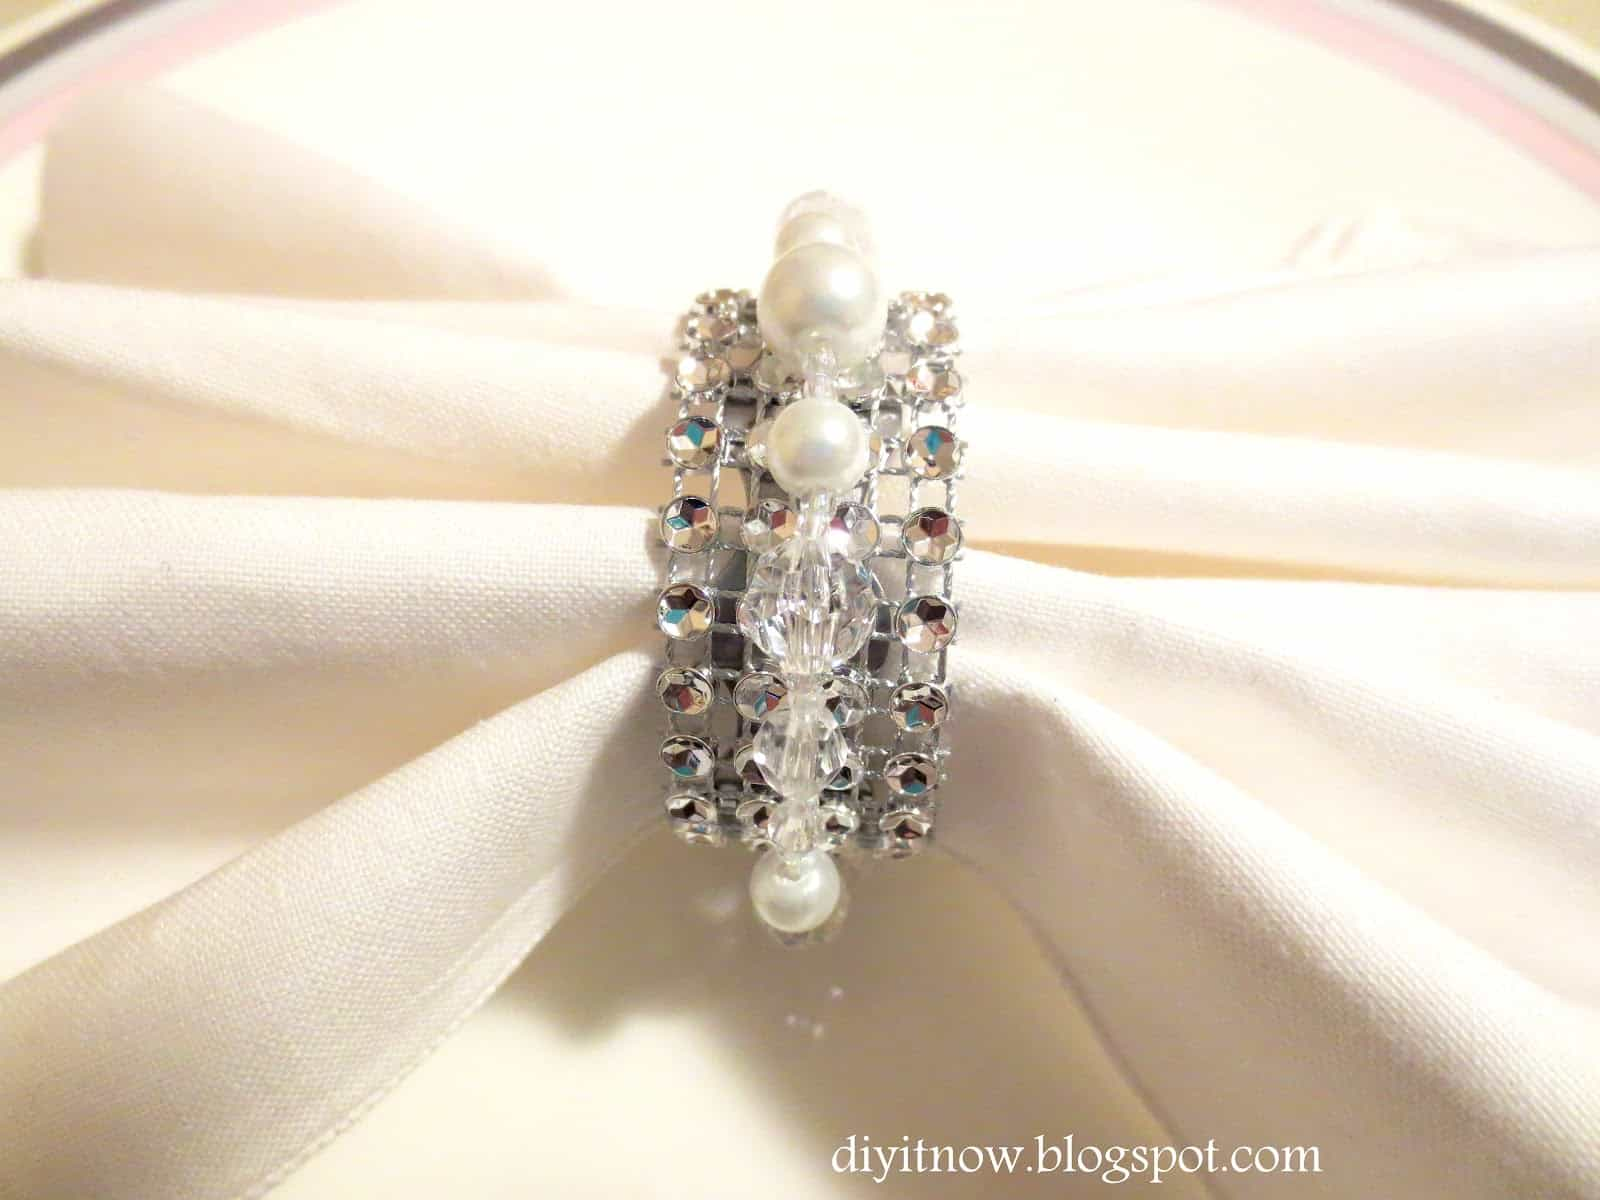 Rhinestone and pearl napkin rings